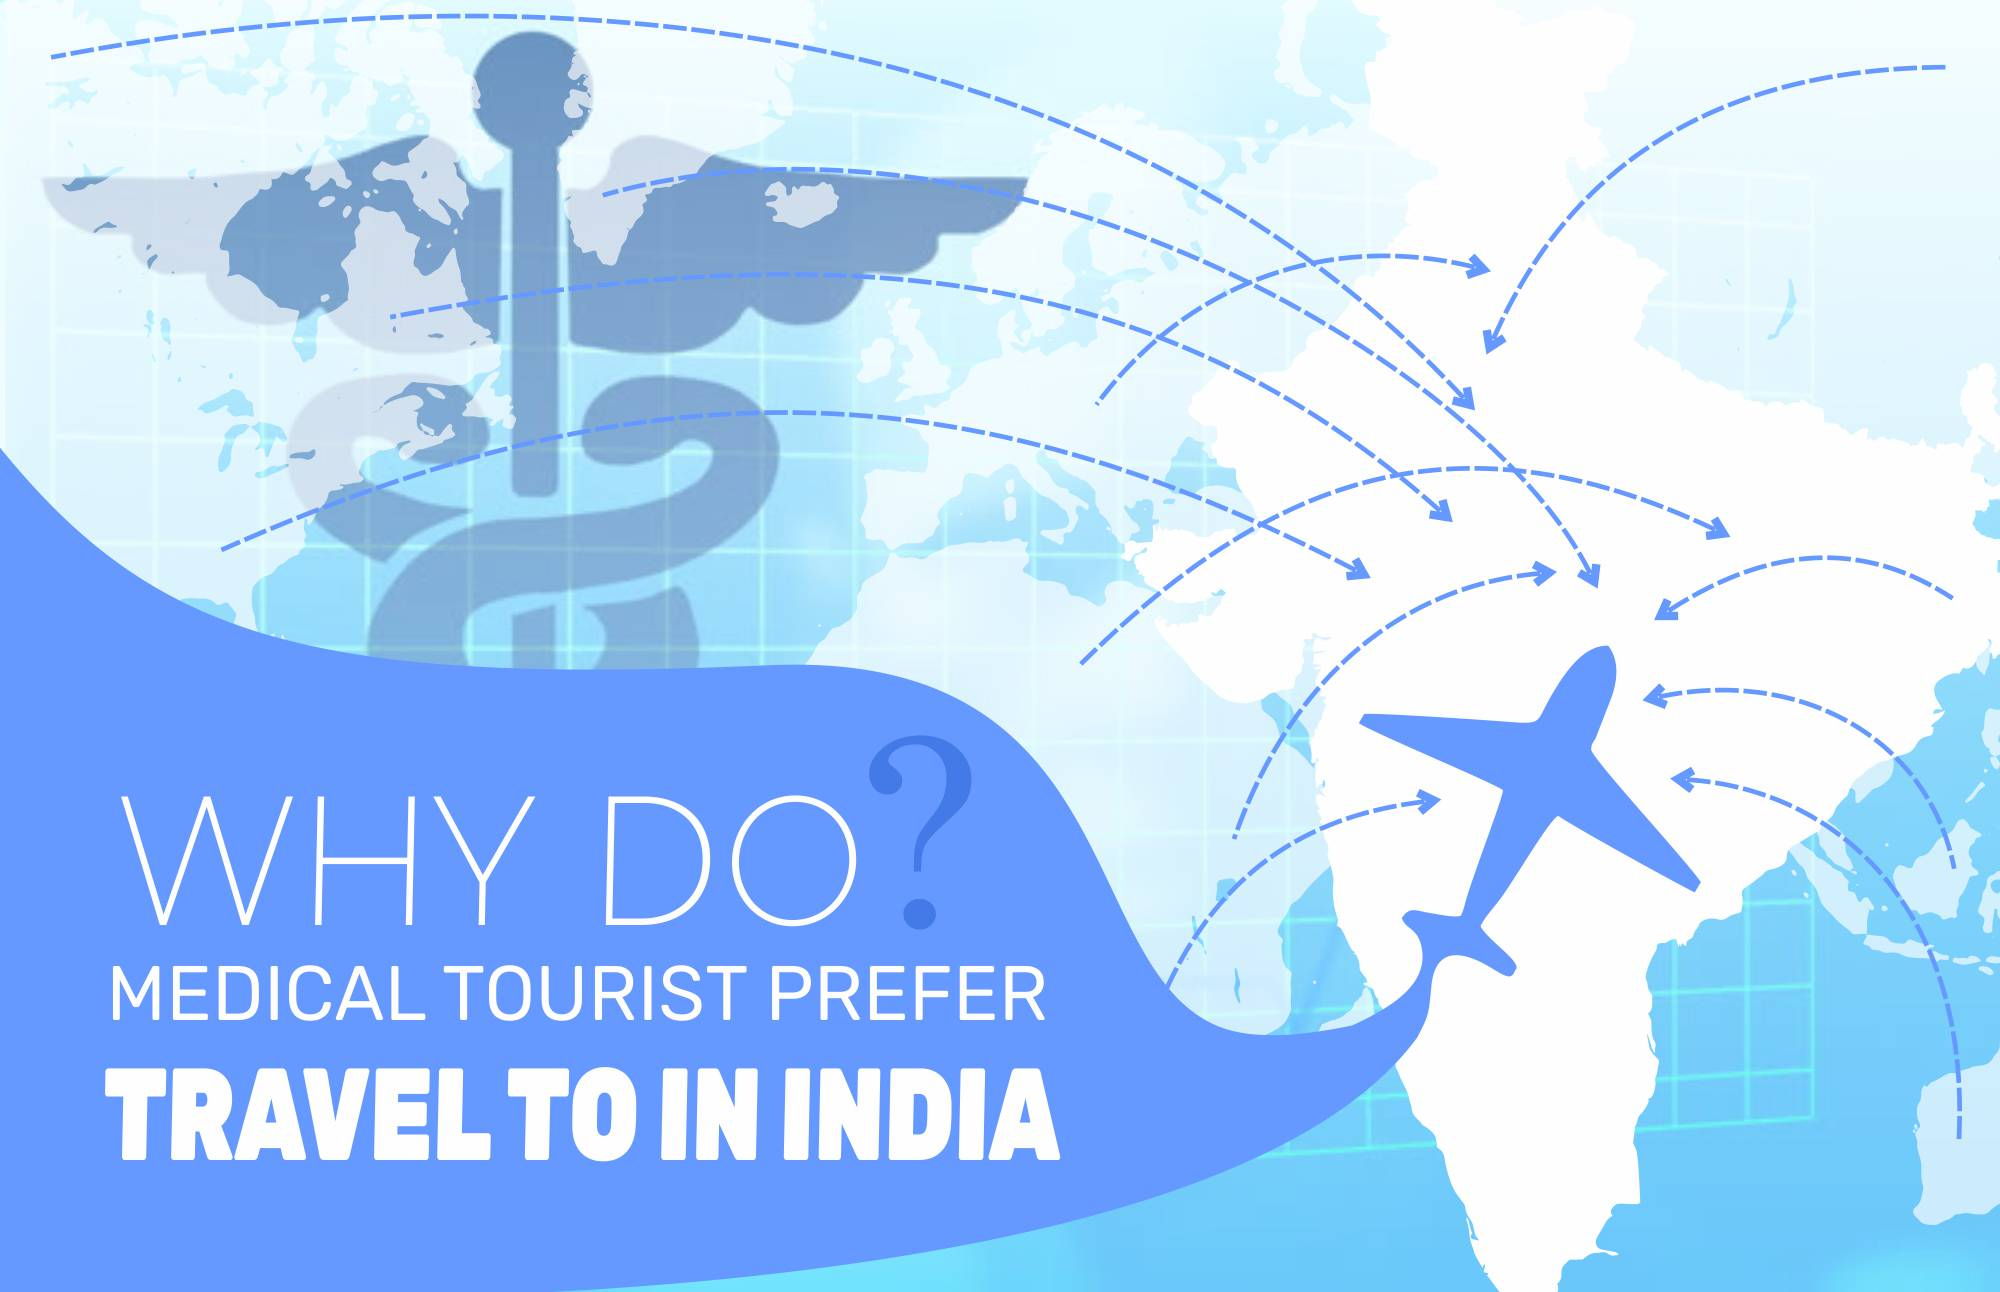 Why medical tourism is important in India